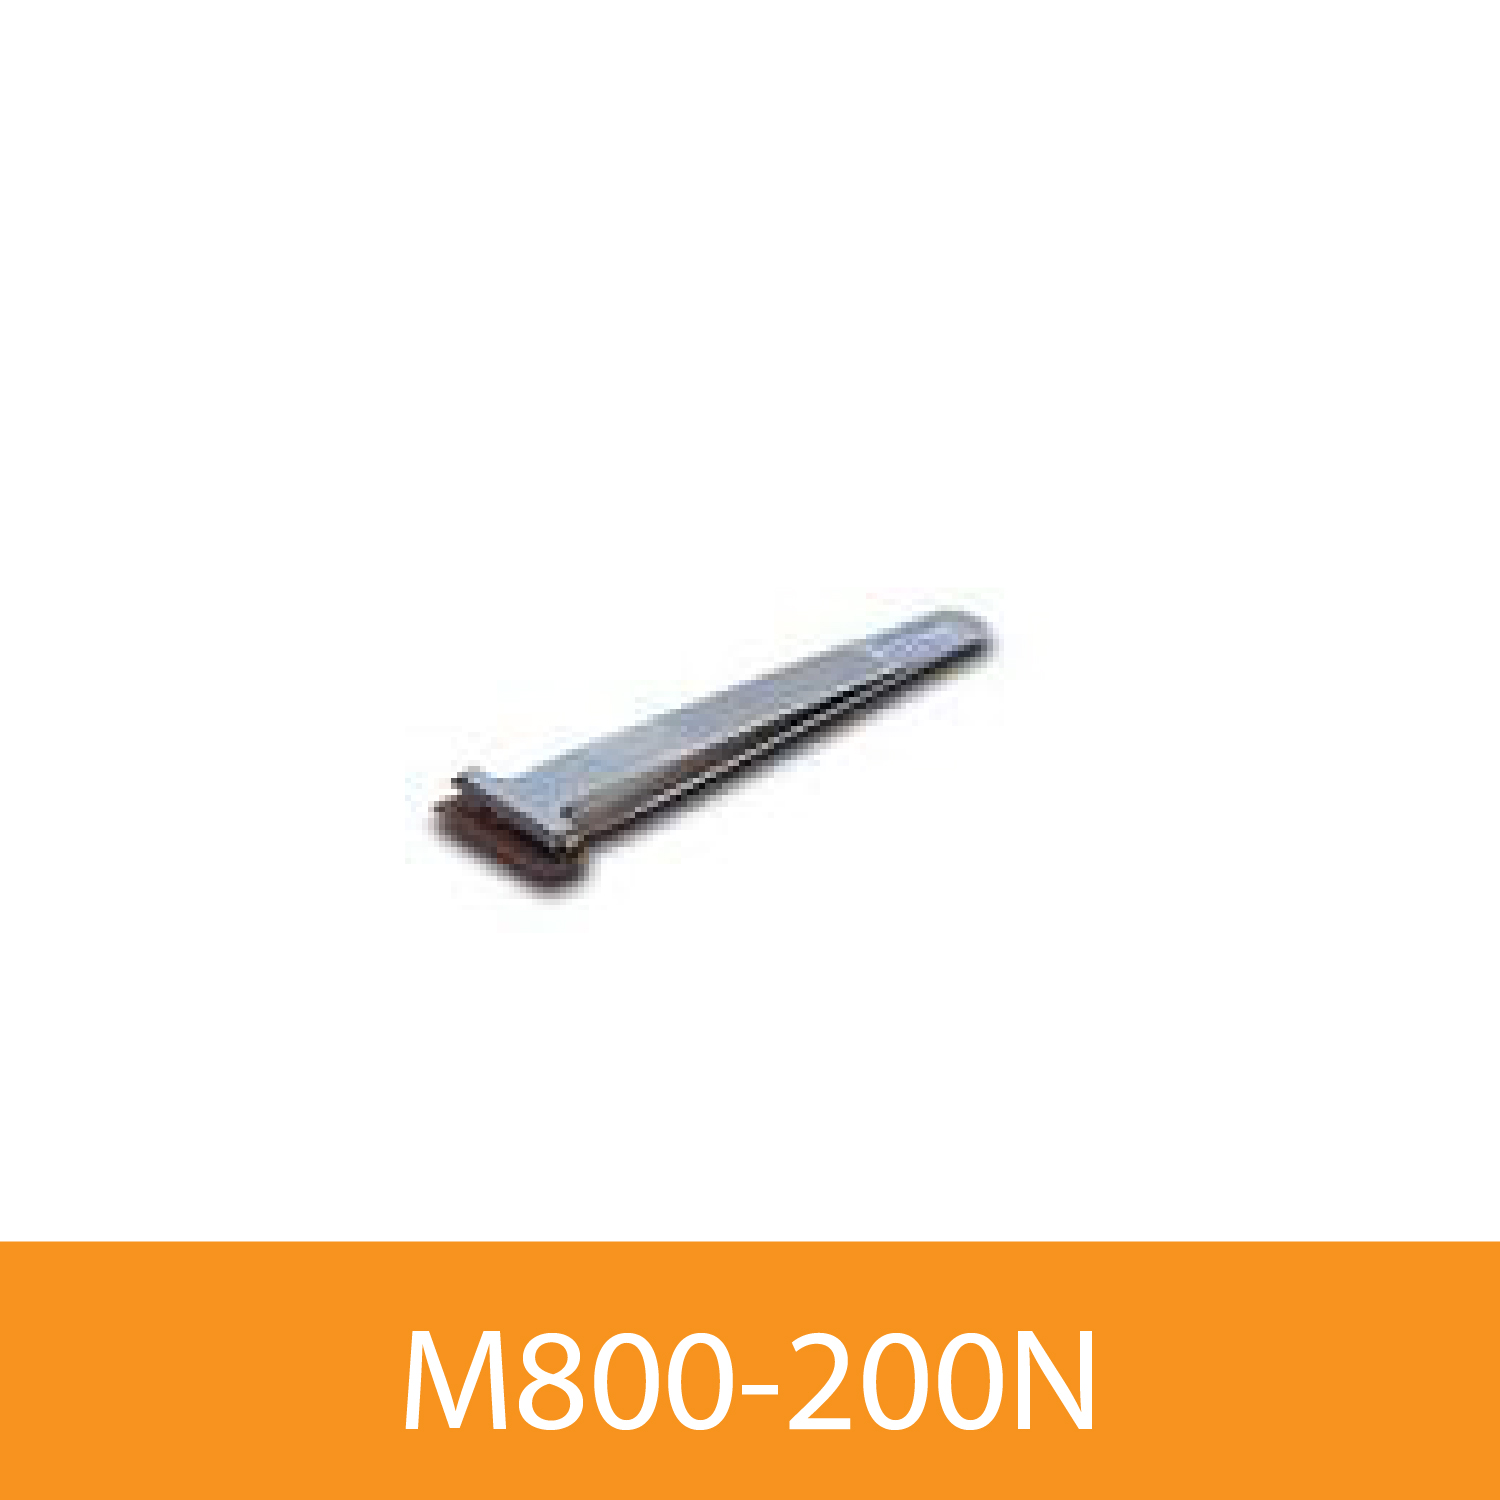 Wafer Tweezer (M800-200N)